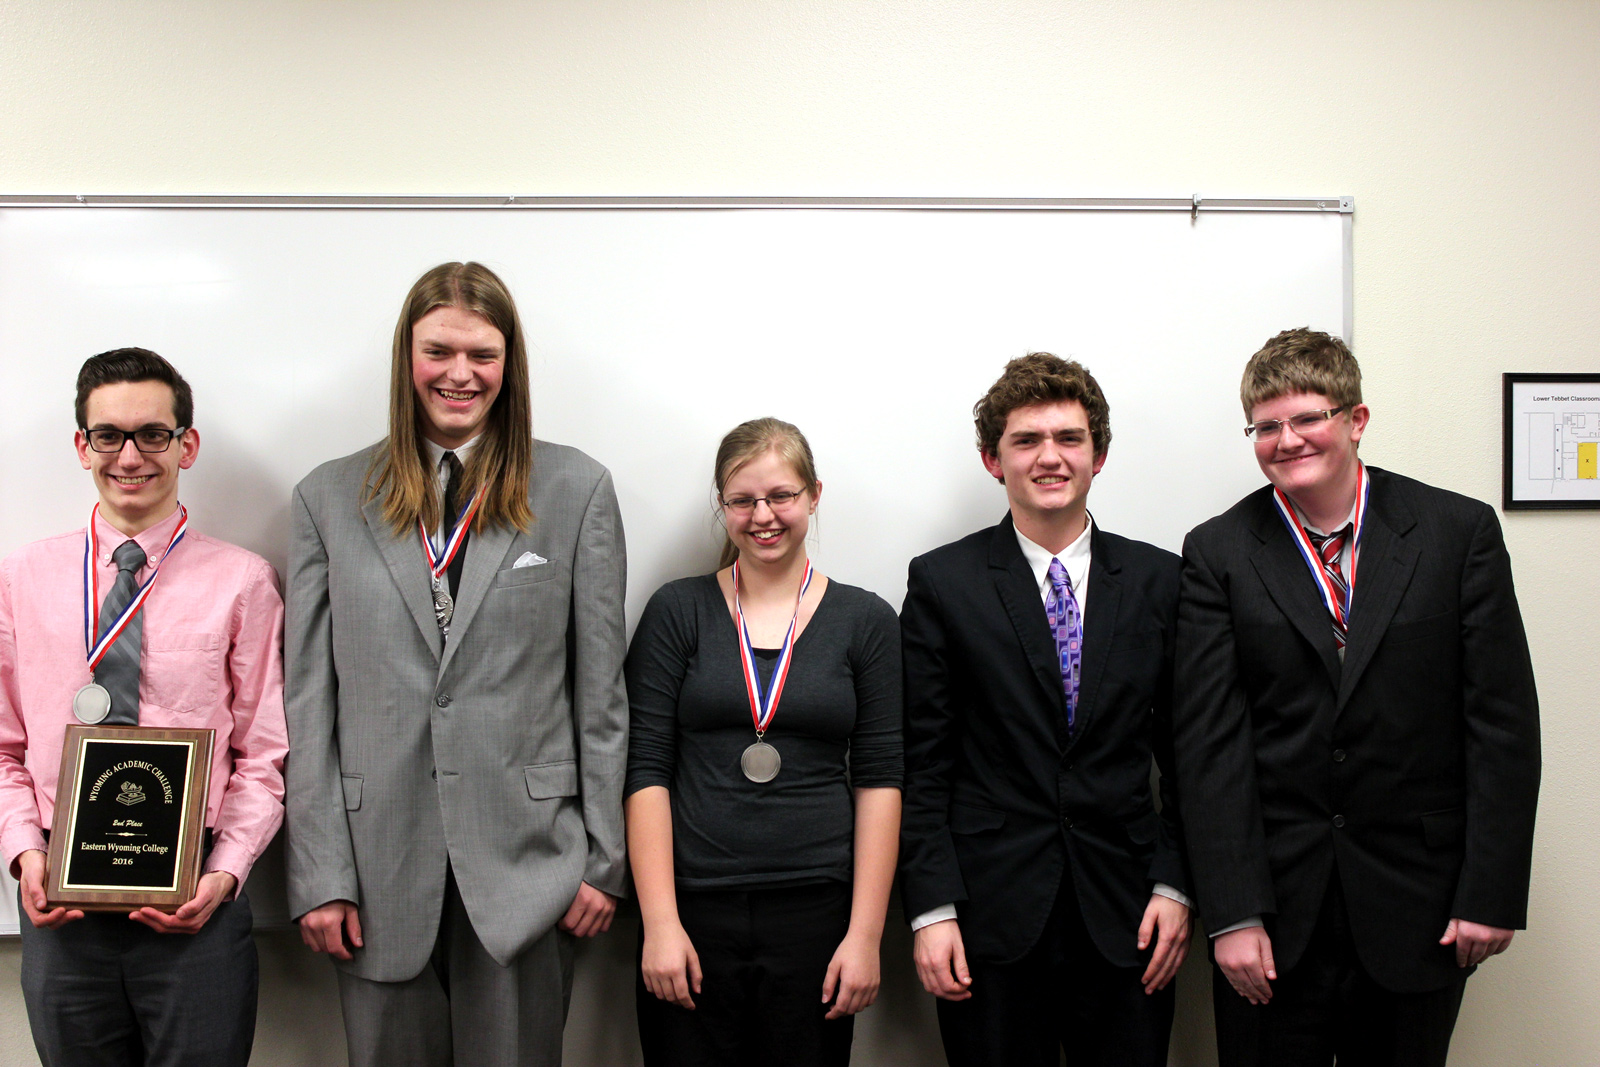 Sheridan High School placed 3rd at the Wyoming Academic Challenge held at EWC